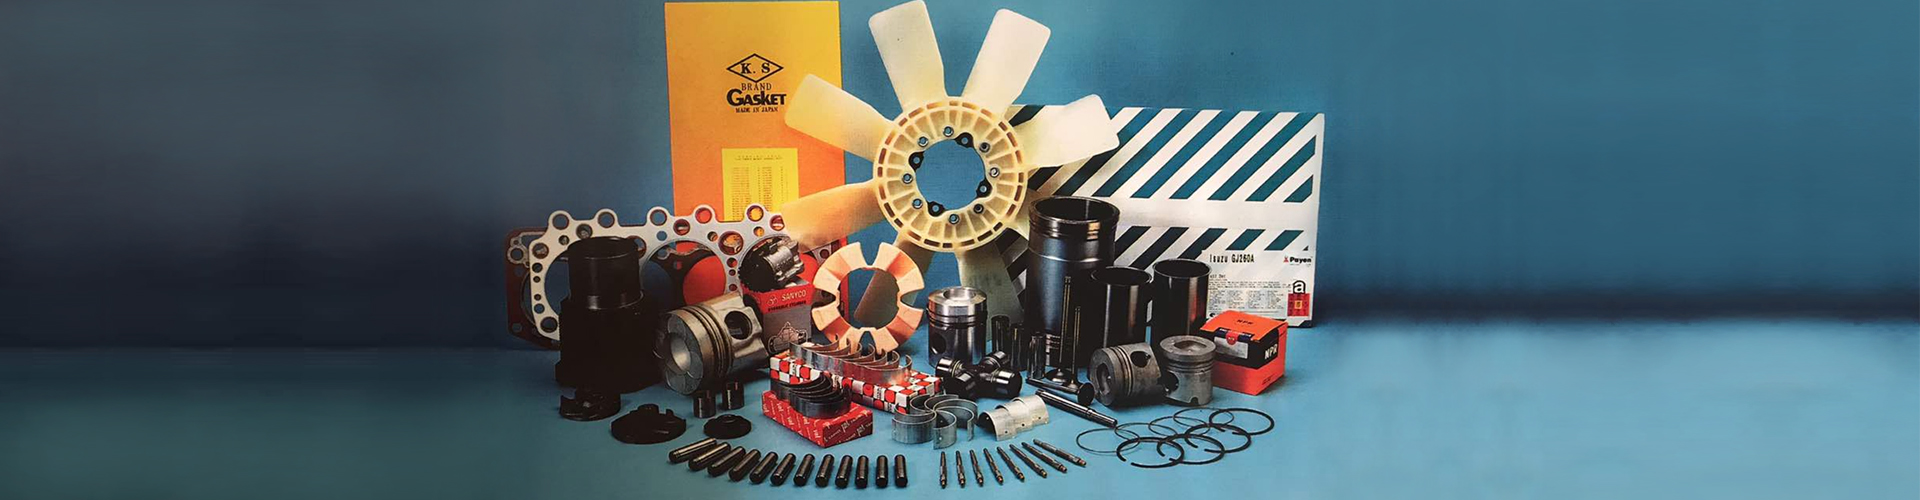 Malaysia Engine Spare Parts Supplier | Forktrak Engineering Sdn Bhd